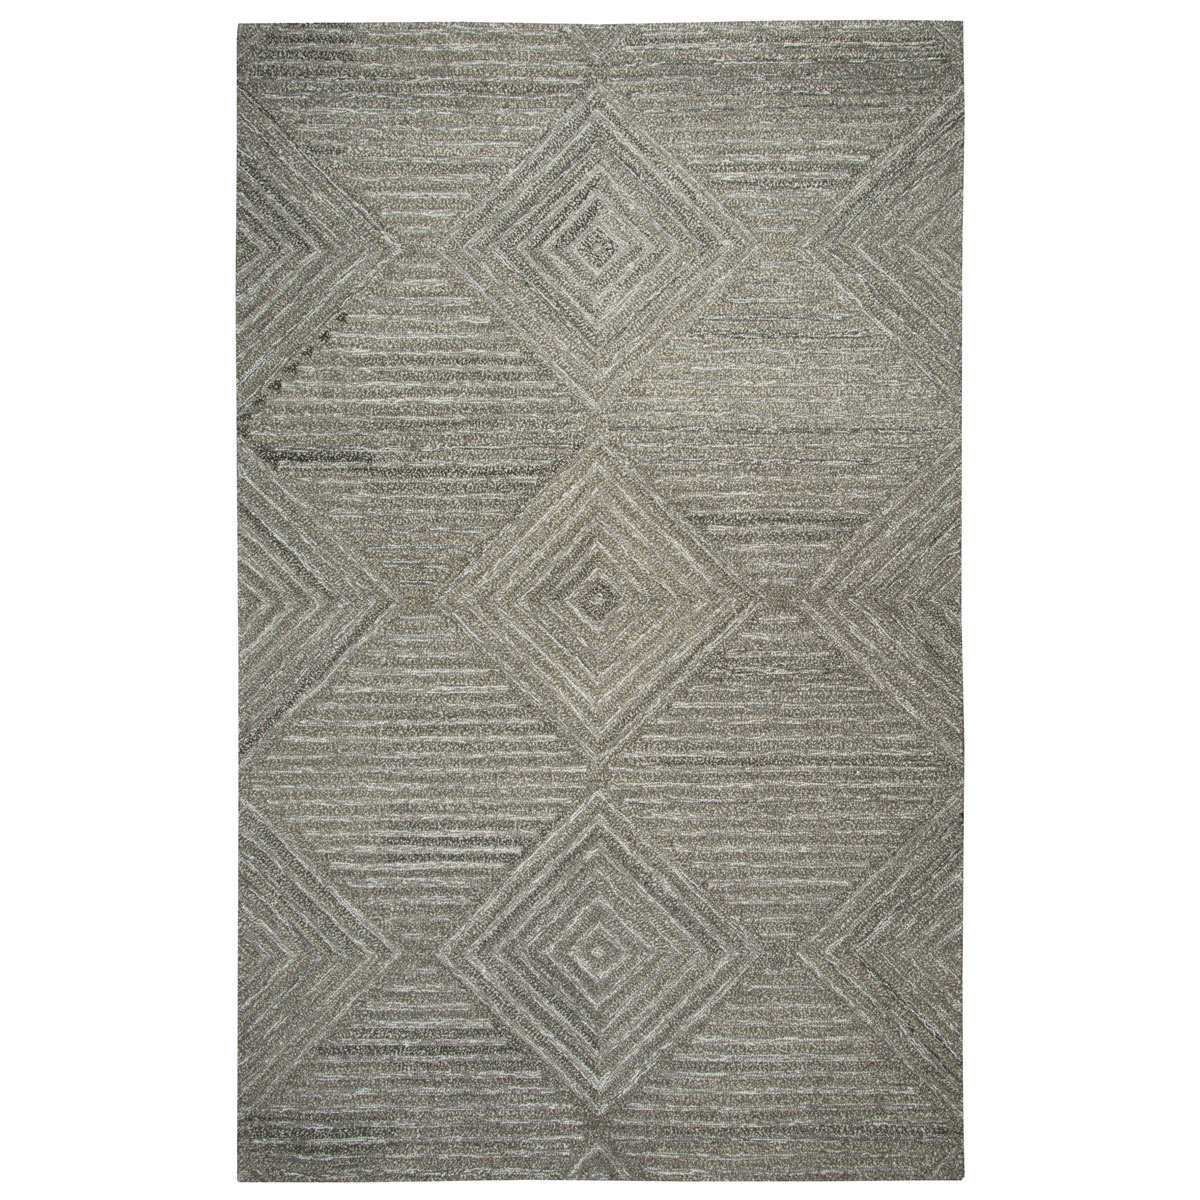 Gray Freemont Canyon Rug - 5 x 8